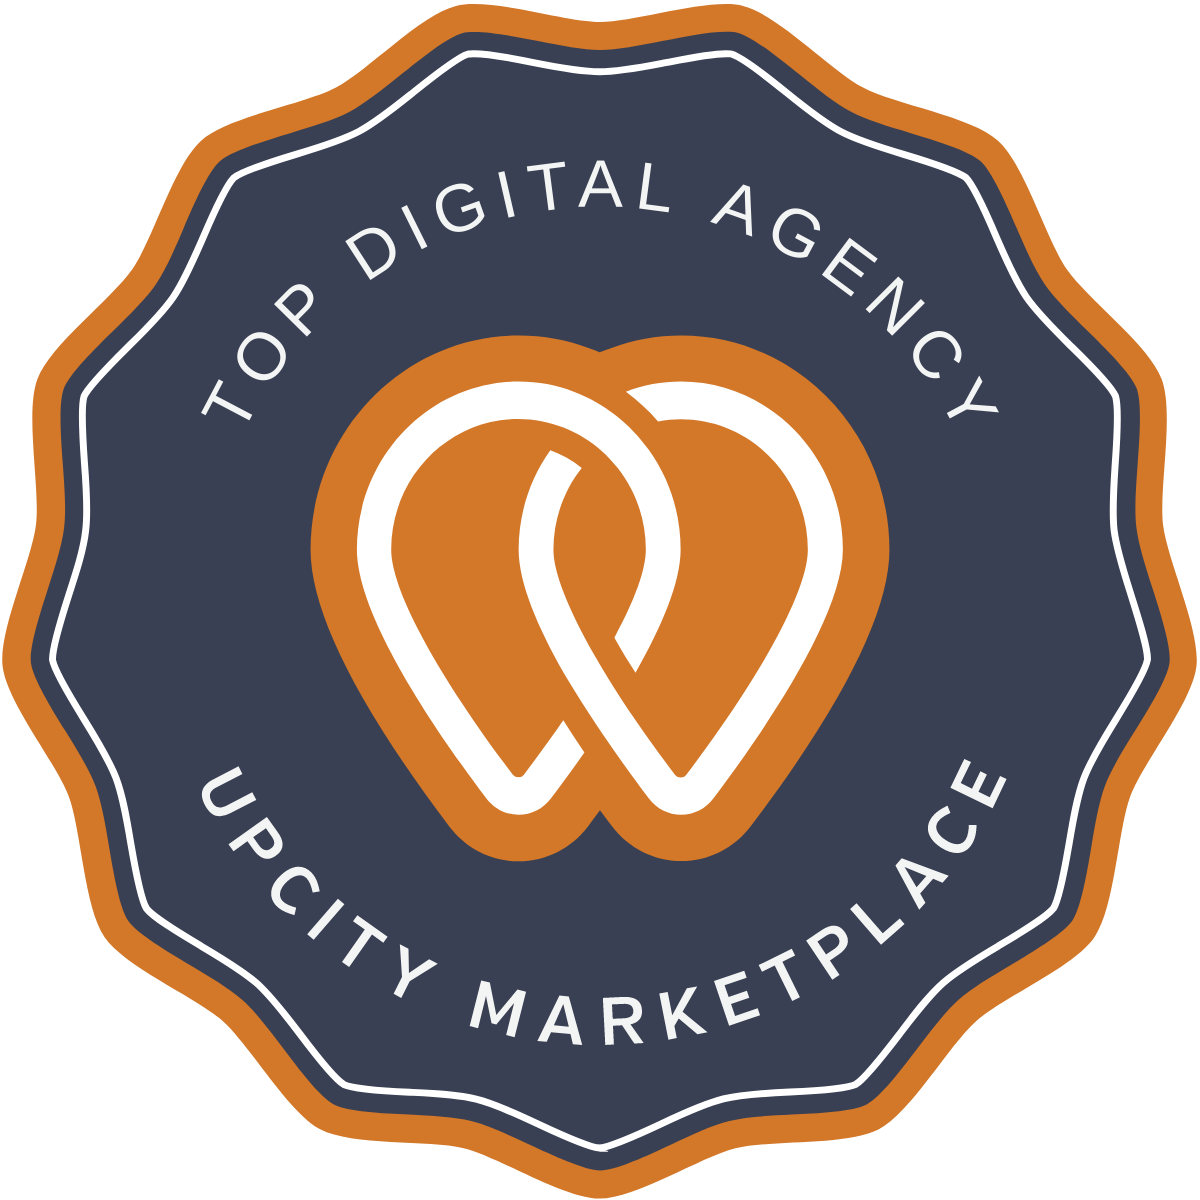 Top digital marketing agency in Calgary